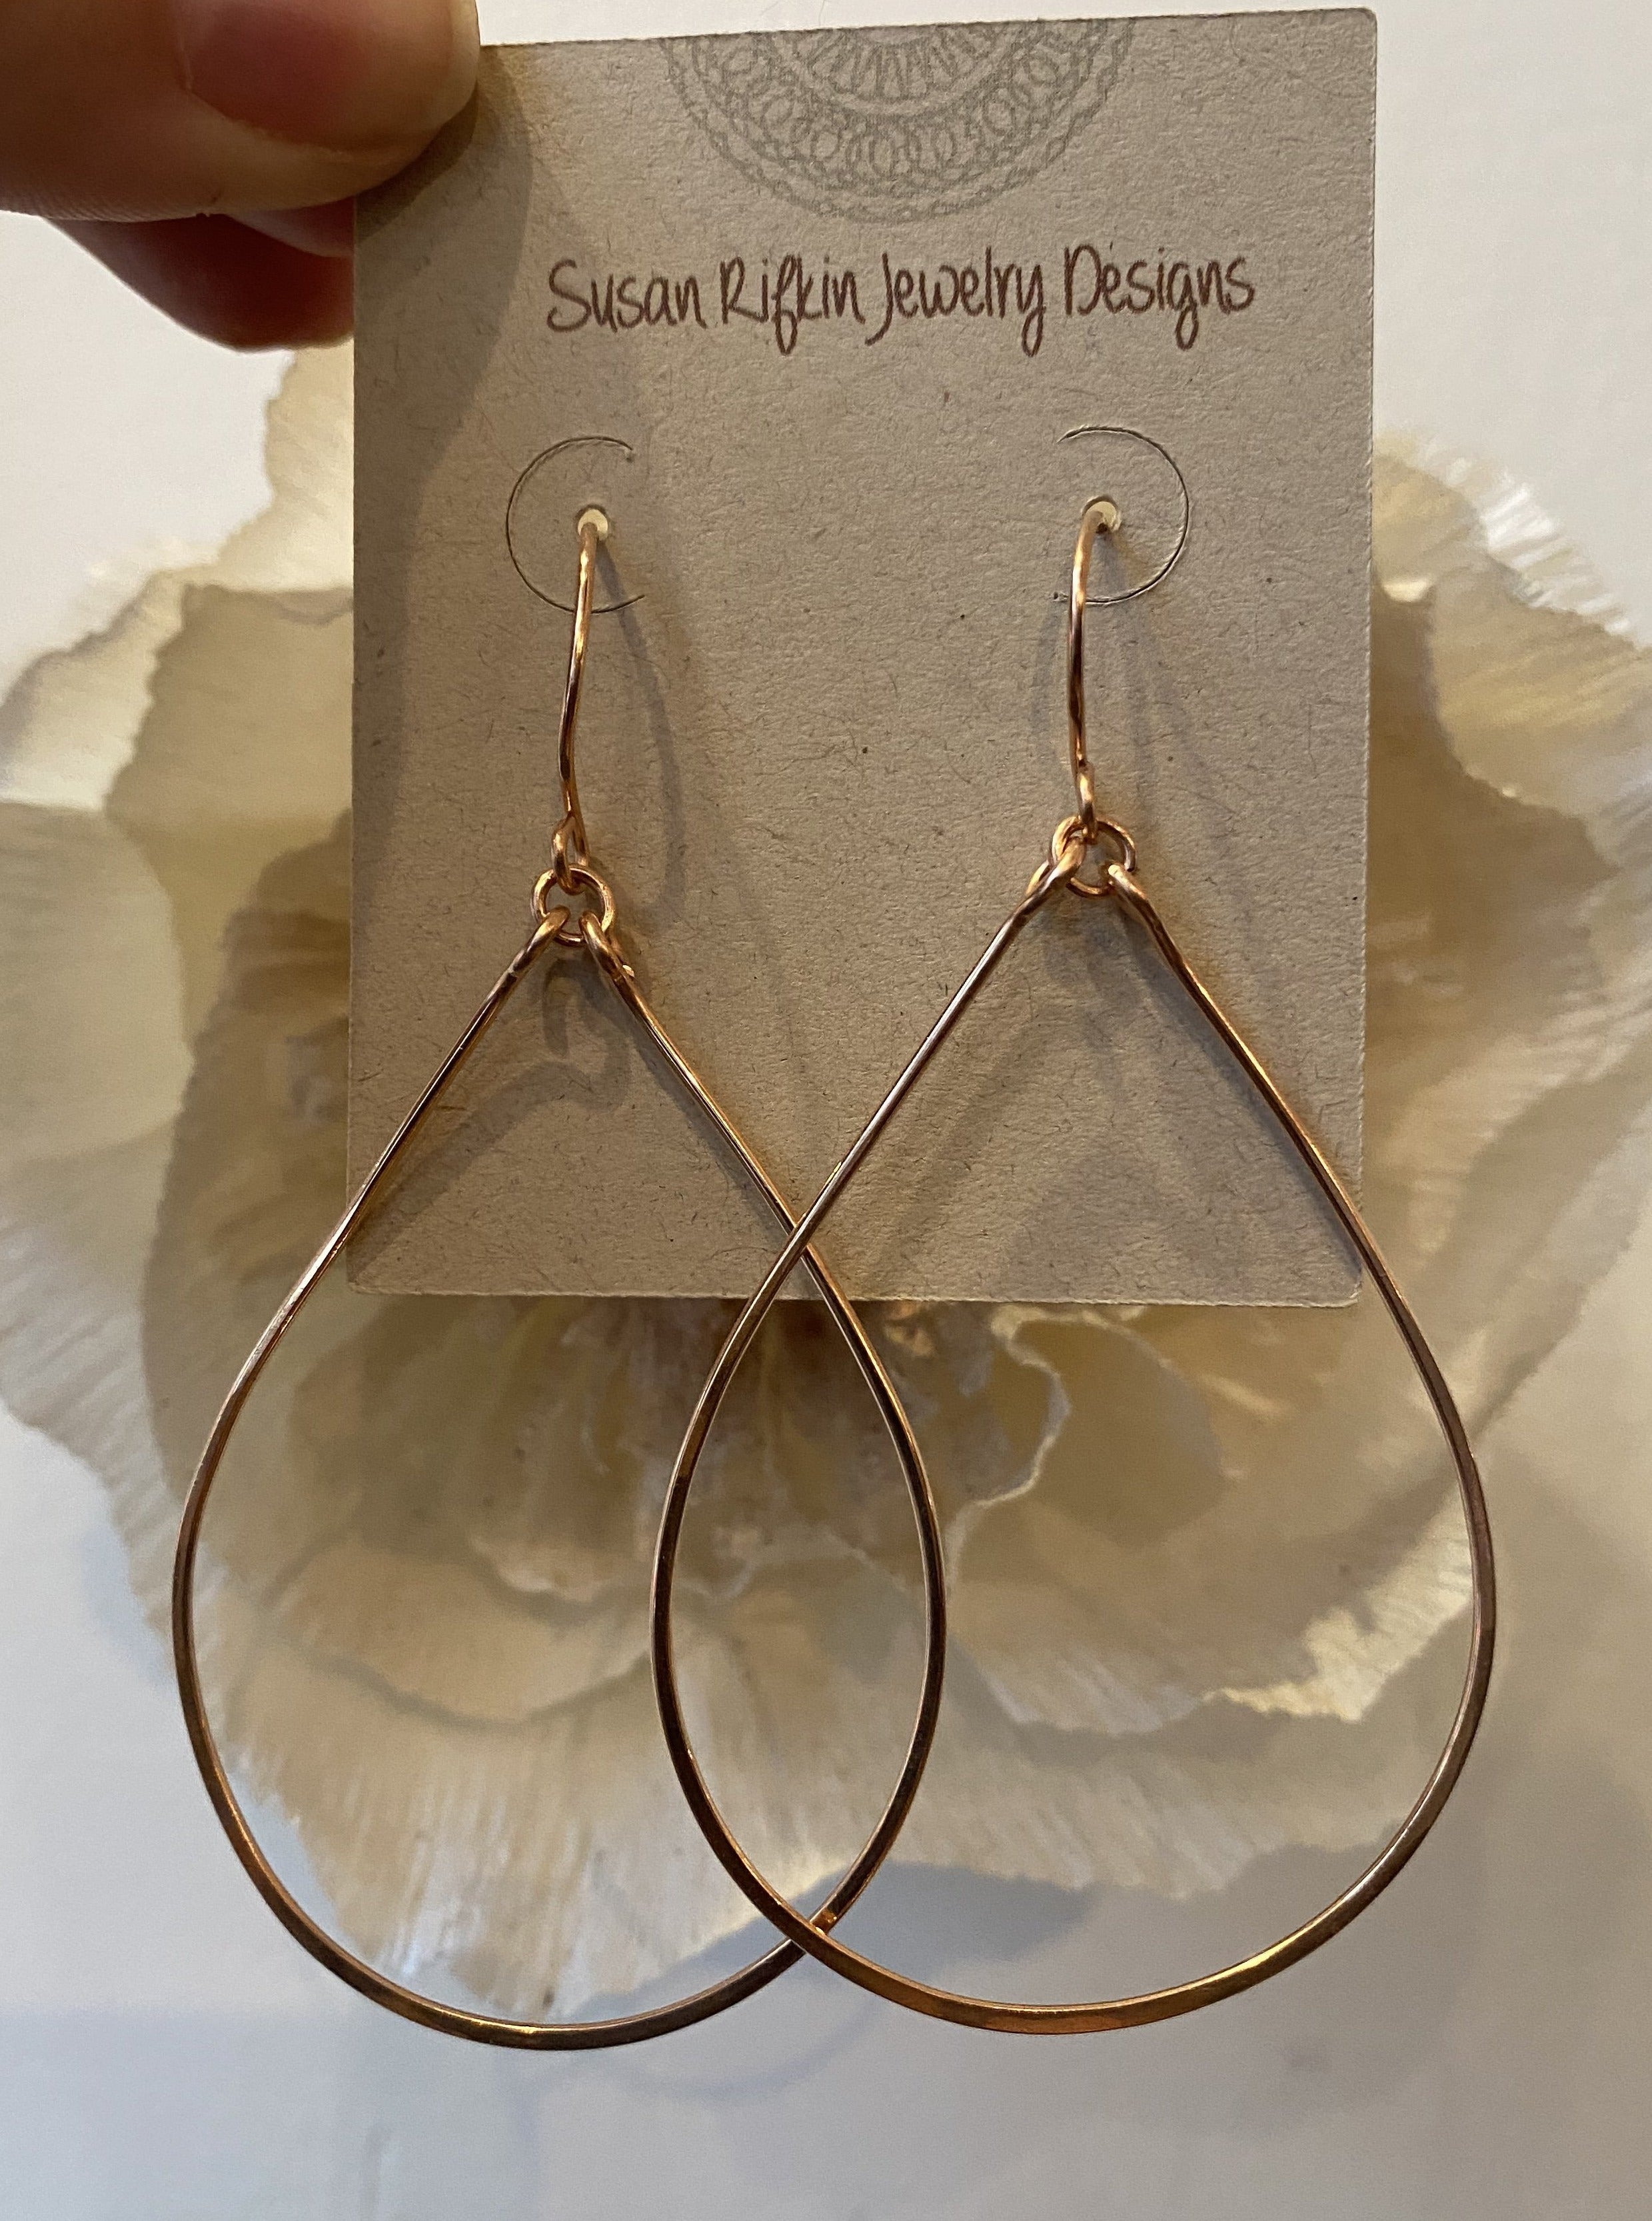 Susan Rifkin Large Rose Gold Teardrop Hoops